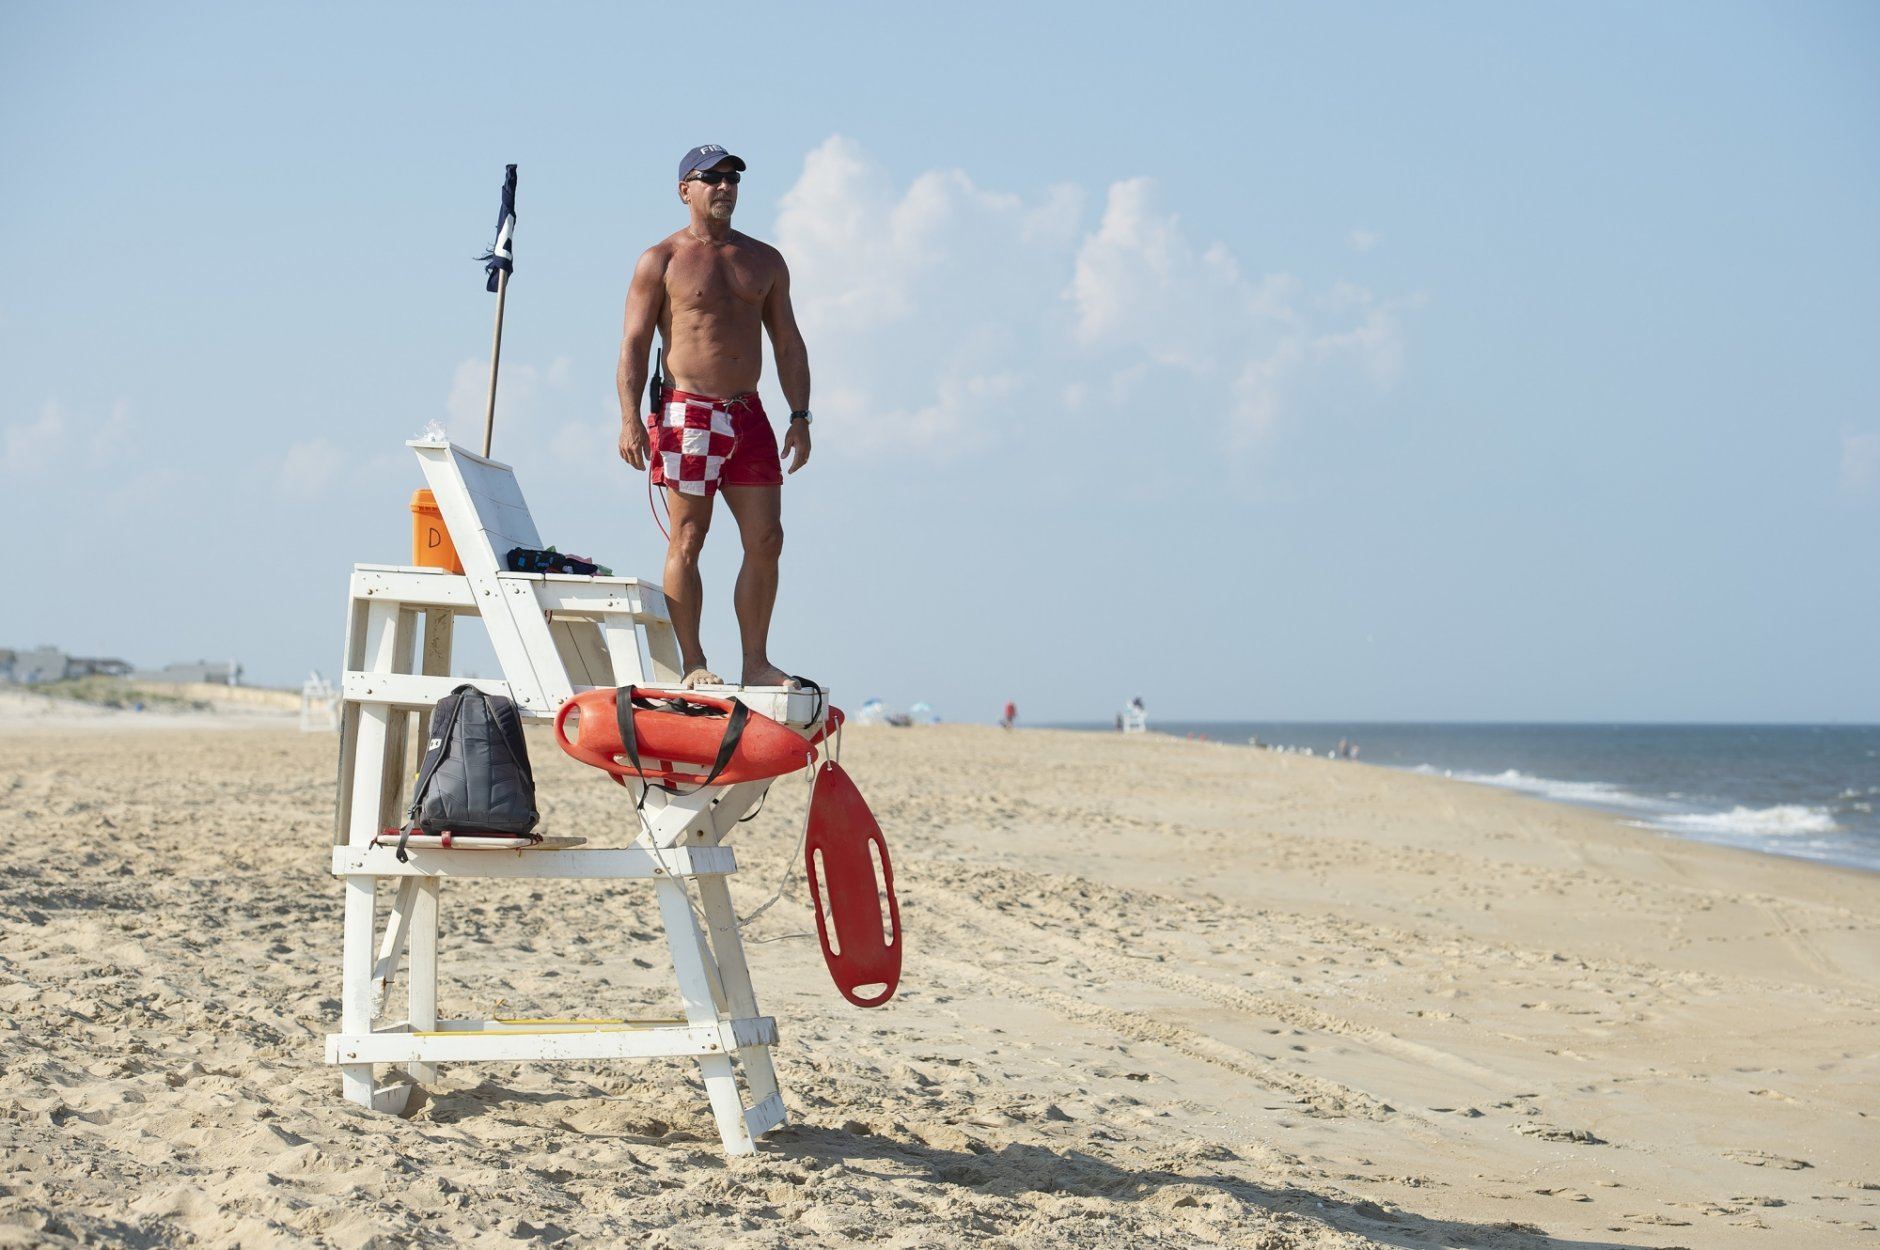 Throughout his decades-long career patrolling the beaches along Delaware's most southern shoreline, Ferry has been a part of hundreds of rescues while also training new generations of lifesavers. (AP/Jason Minto)